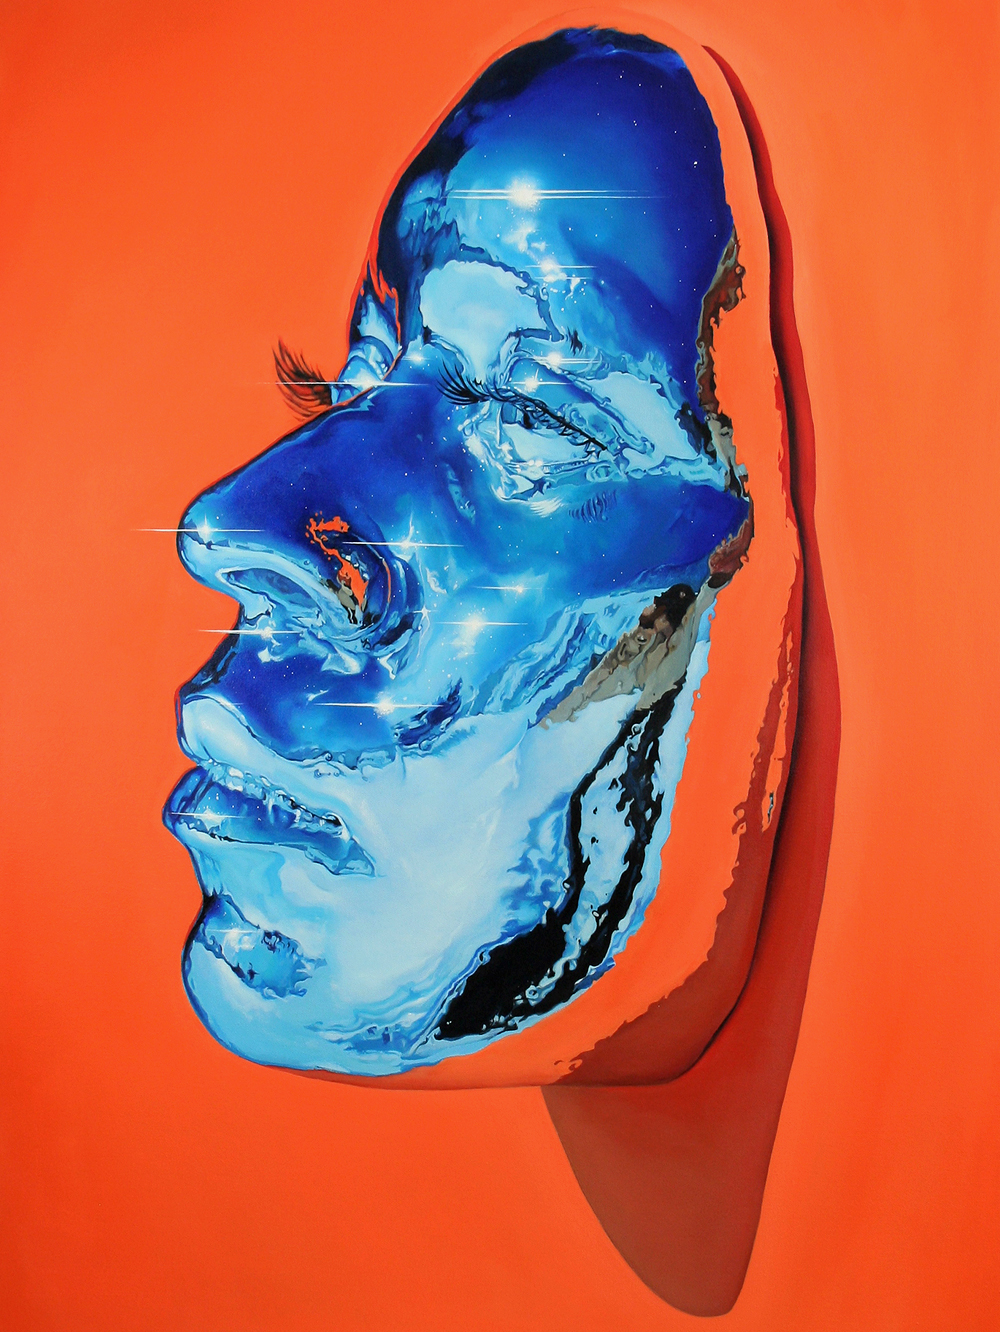 Paintings of Chrome Masks by Kip Omolade #artpeople